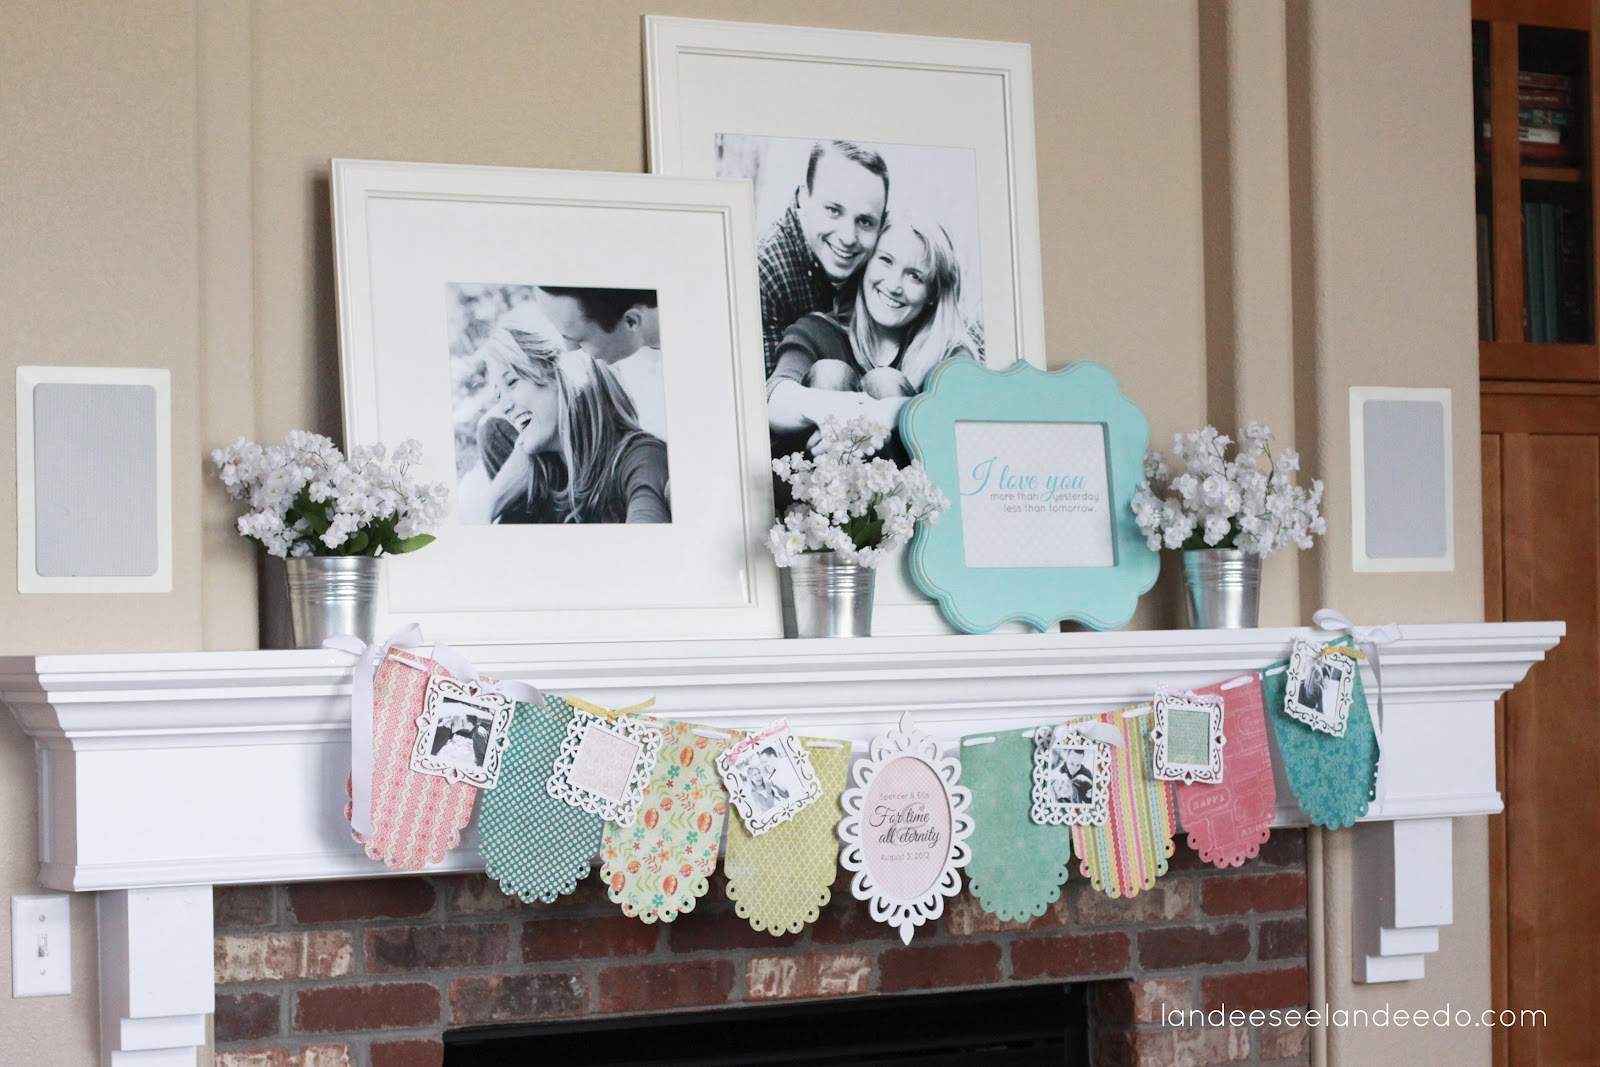 decorations for a wedding shower wedding shower banner amp mantel landeelu 3426